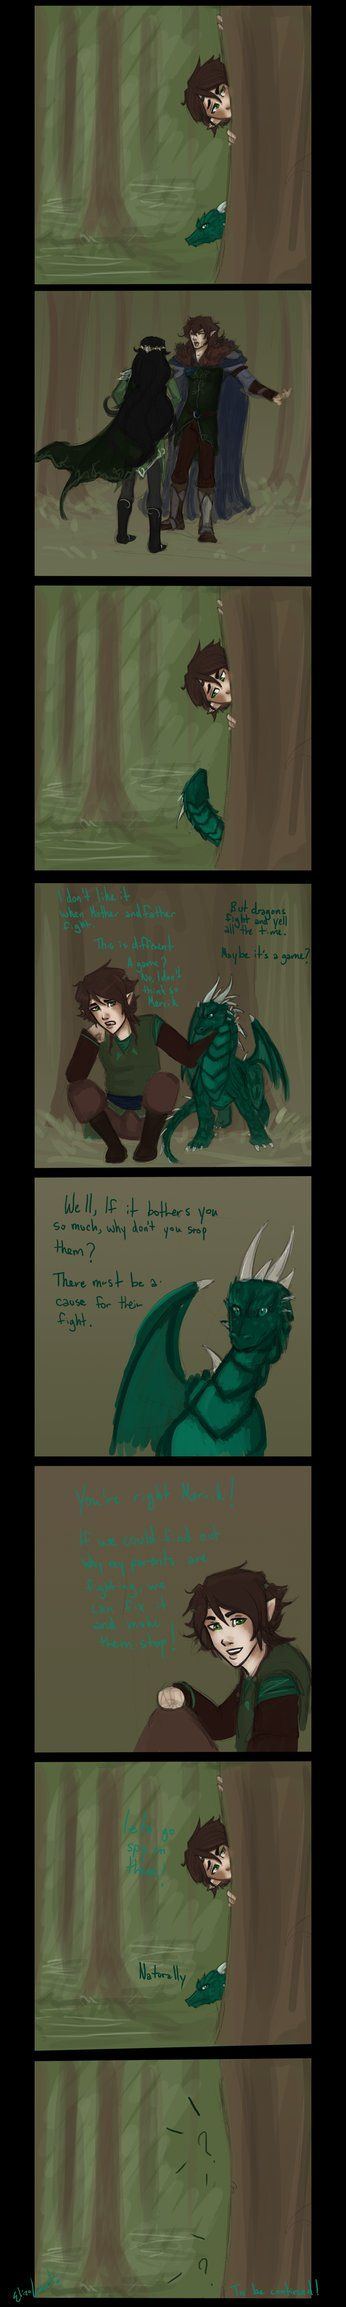 The Adventures of Kevan and Merrik by ElizaLento on DeviantArt